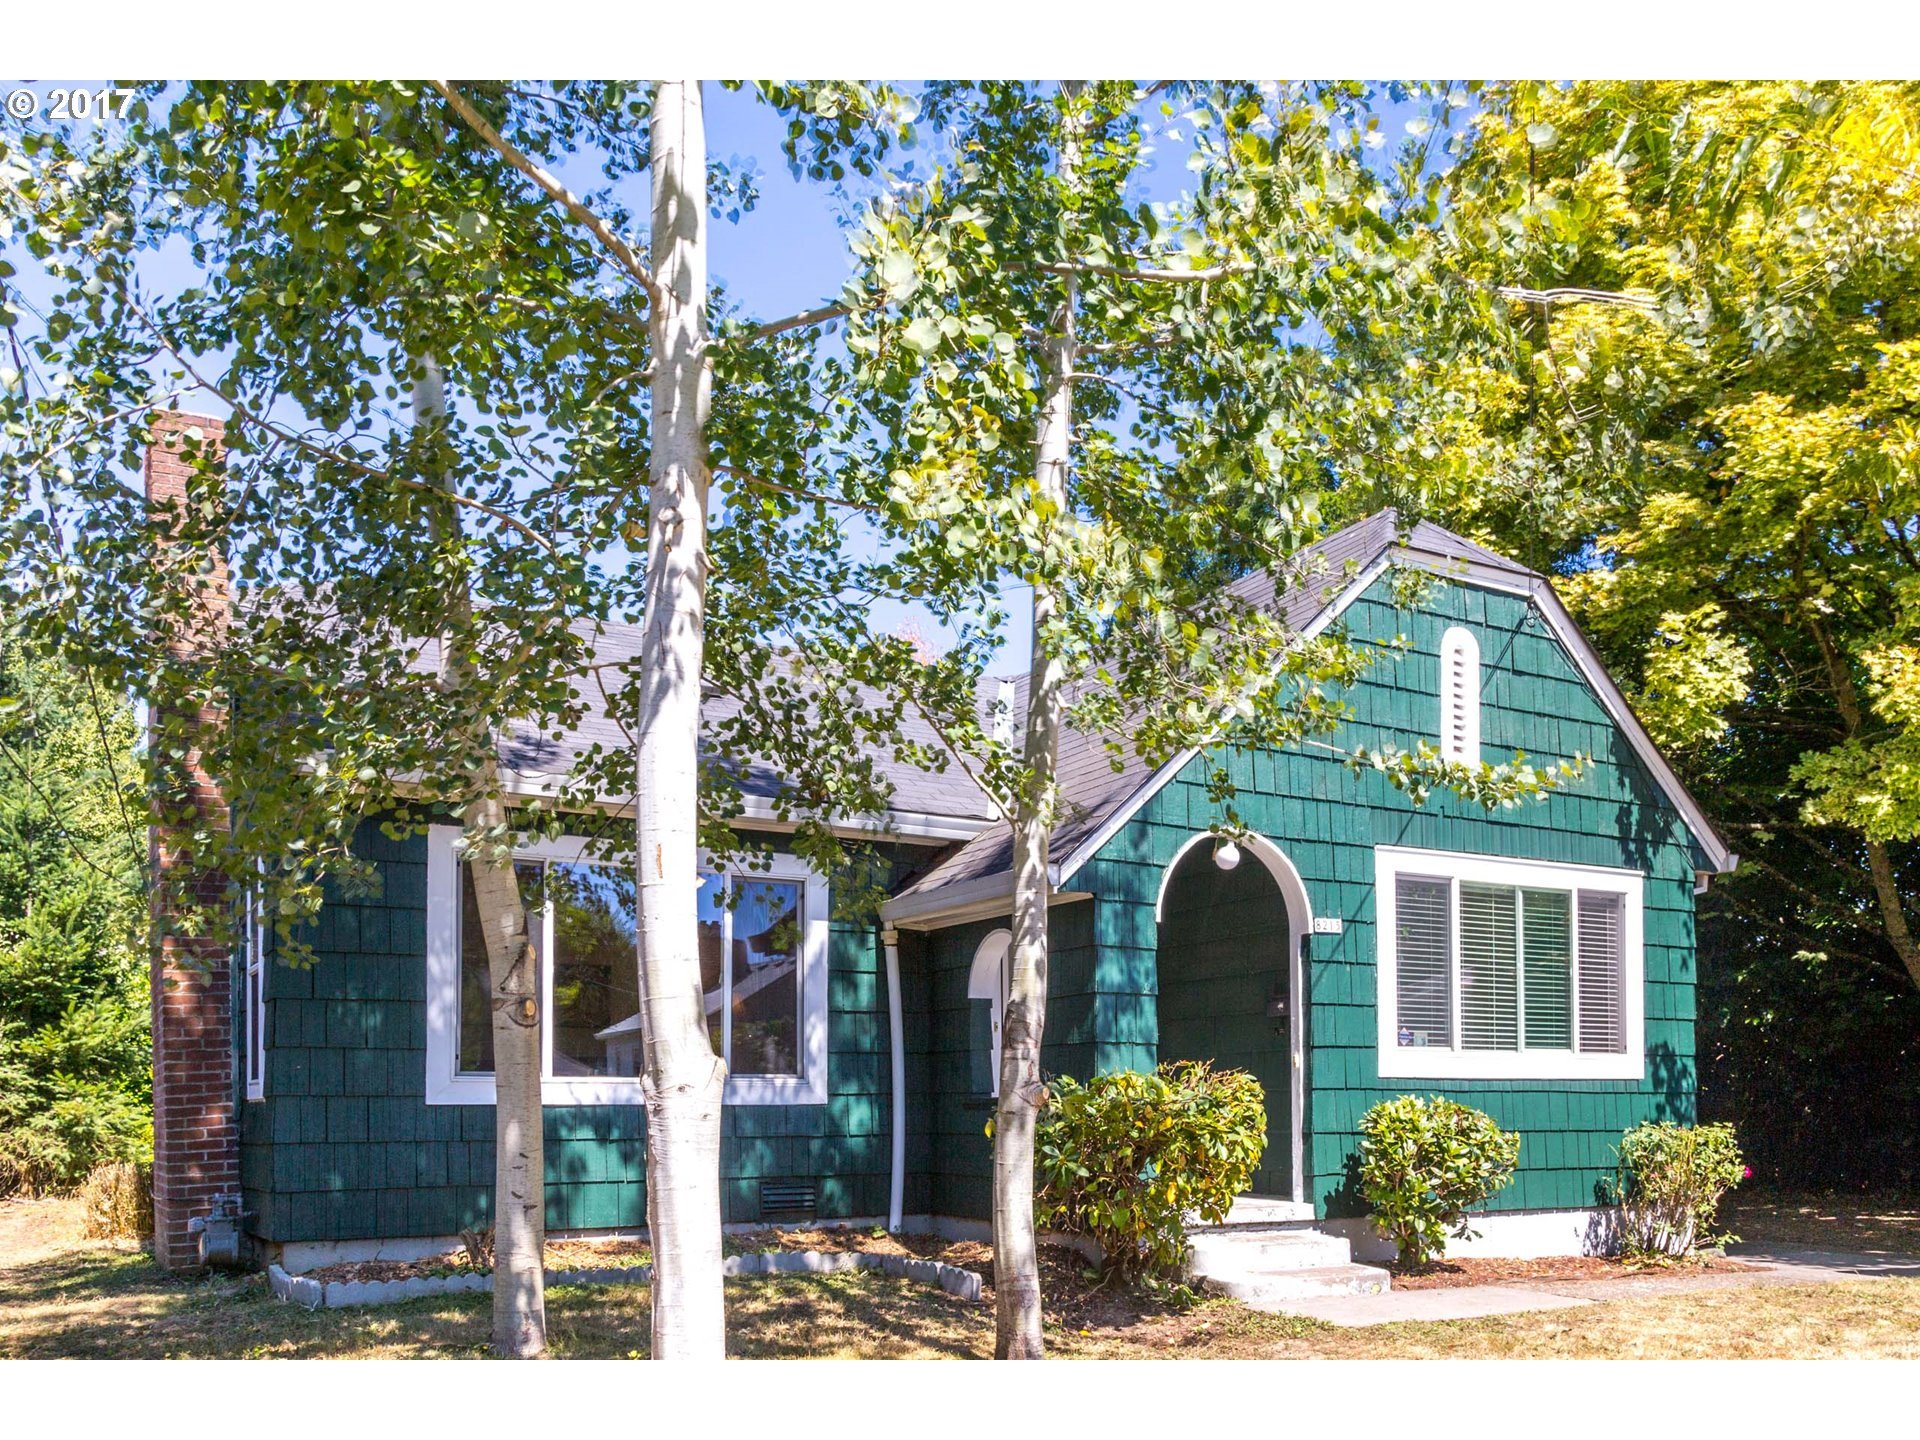 St. Johns cottage w/ coved ceilings, picture railings, & original built-ins. Mantled fireplace in living room, ss appliances plus ample cabinet & counter space in kitchen is ready to serve! Two generous bedrooms share full bath on main w/ third bed downstairs. Backyard w/ privacy hedges and fence ready to be landscaped w/ flowers & veggies.  -- OPEN SUNDAY -- 8/20  from 2pm to 5pm